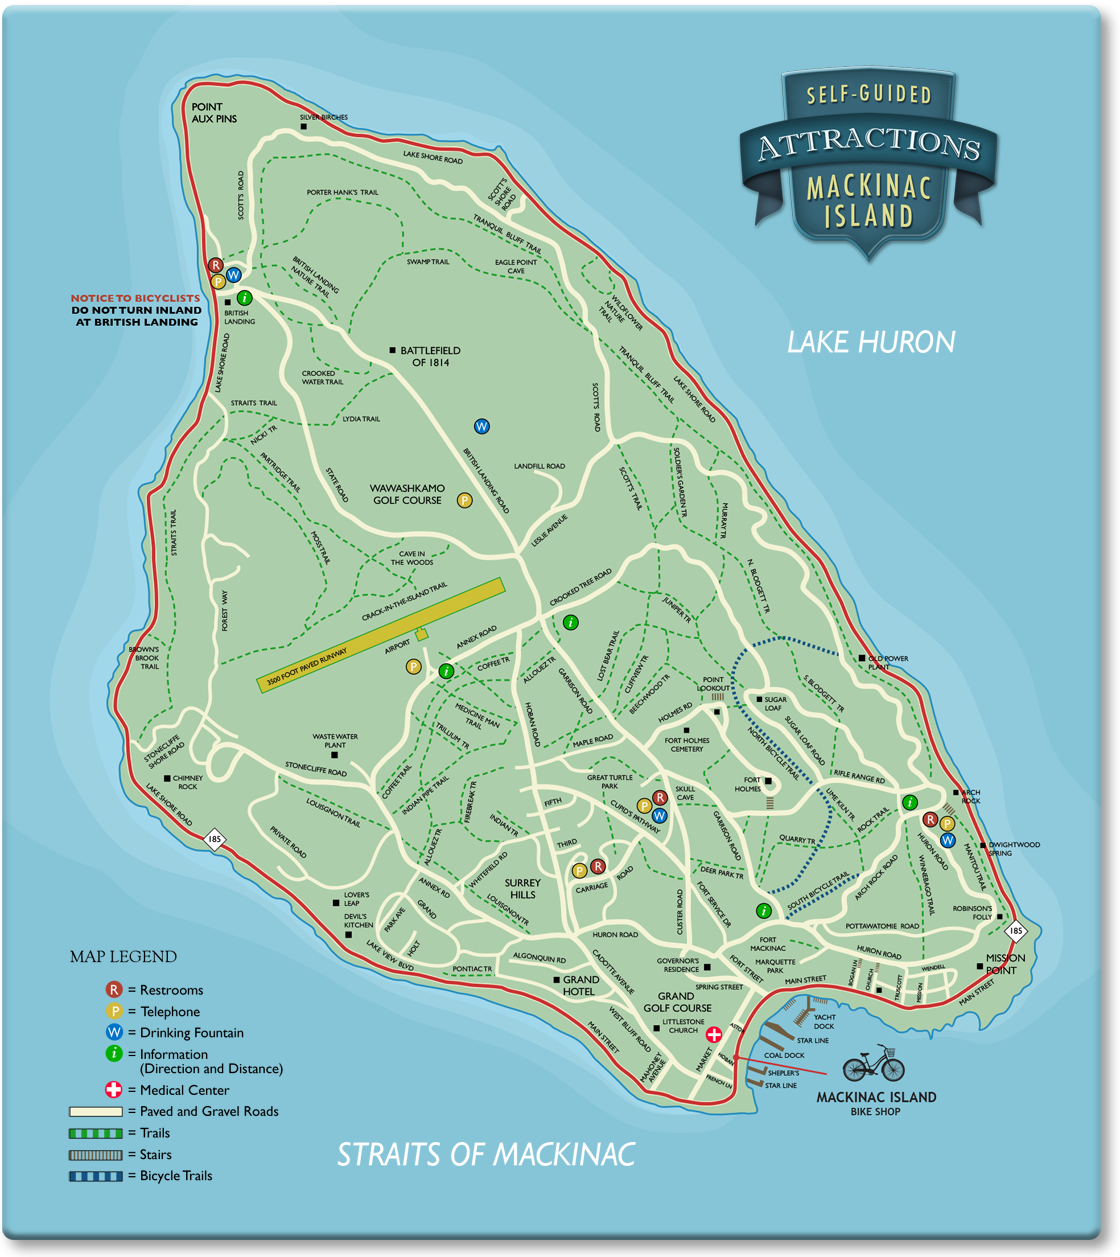 Map Mackinac Island Welcome to Mackinac Island Bike Shop